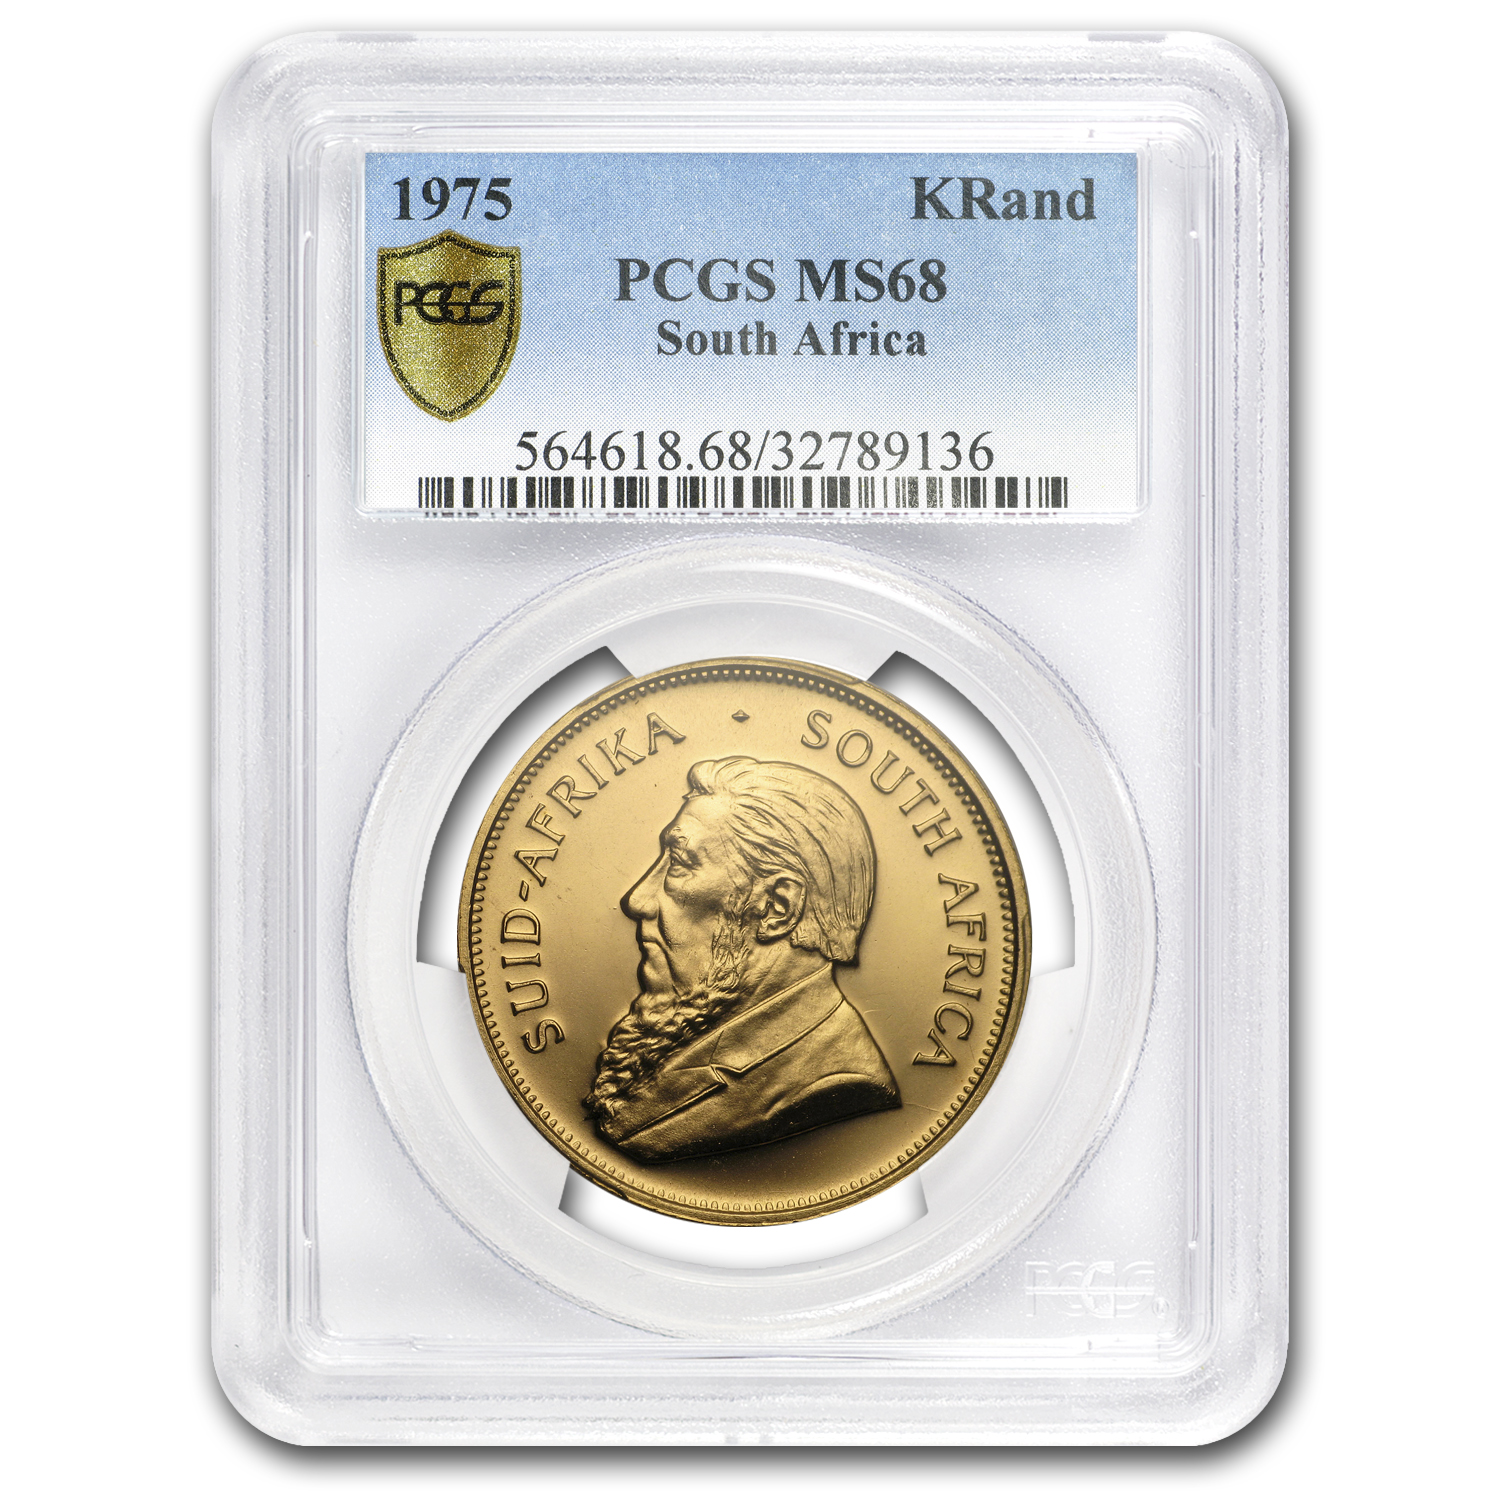 1975 South Africa 1 oz Gold Krugerrand MS-68 PCGS